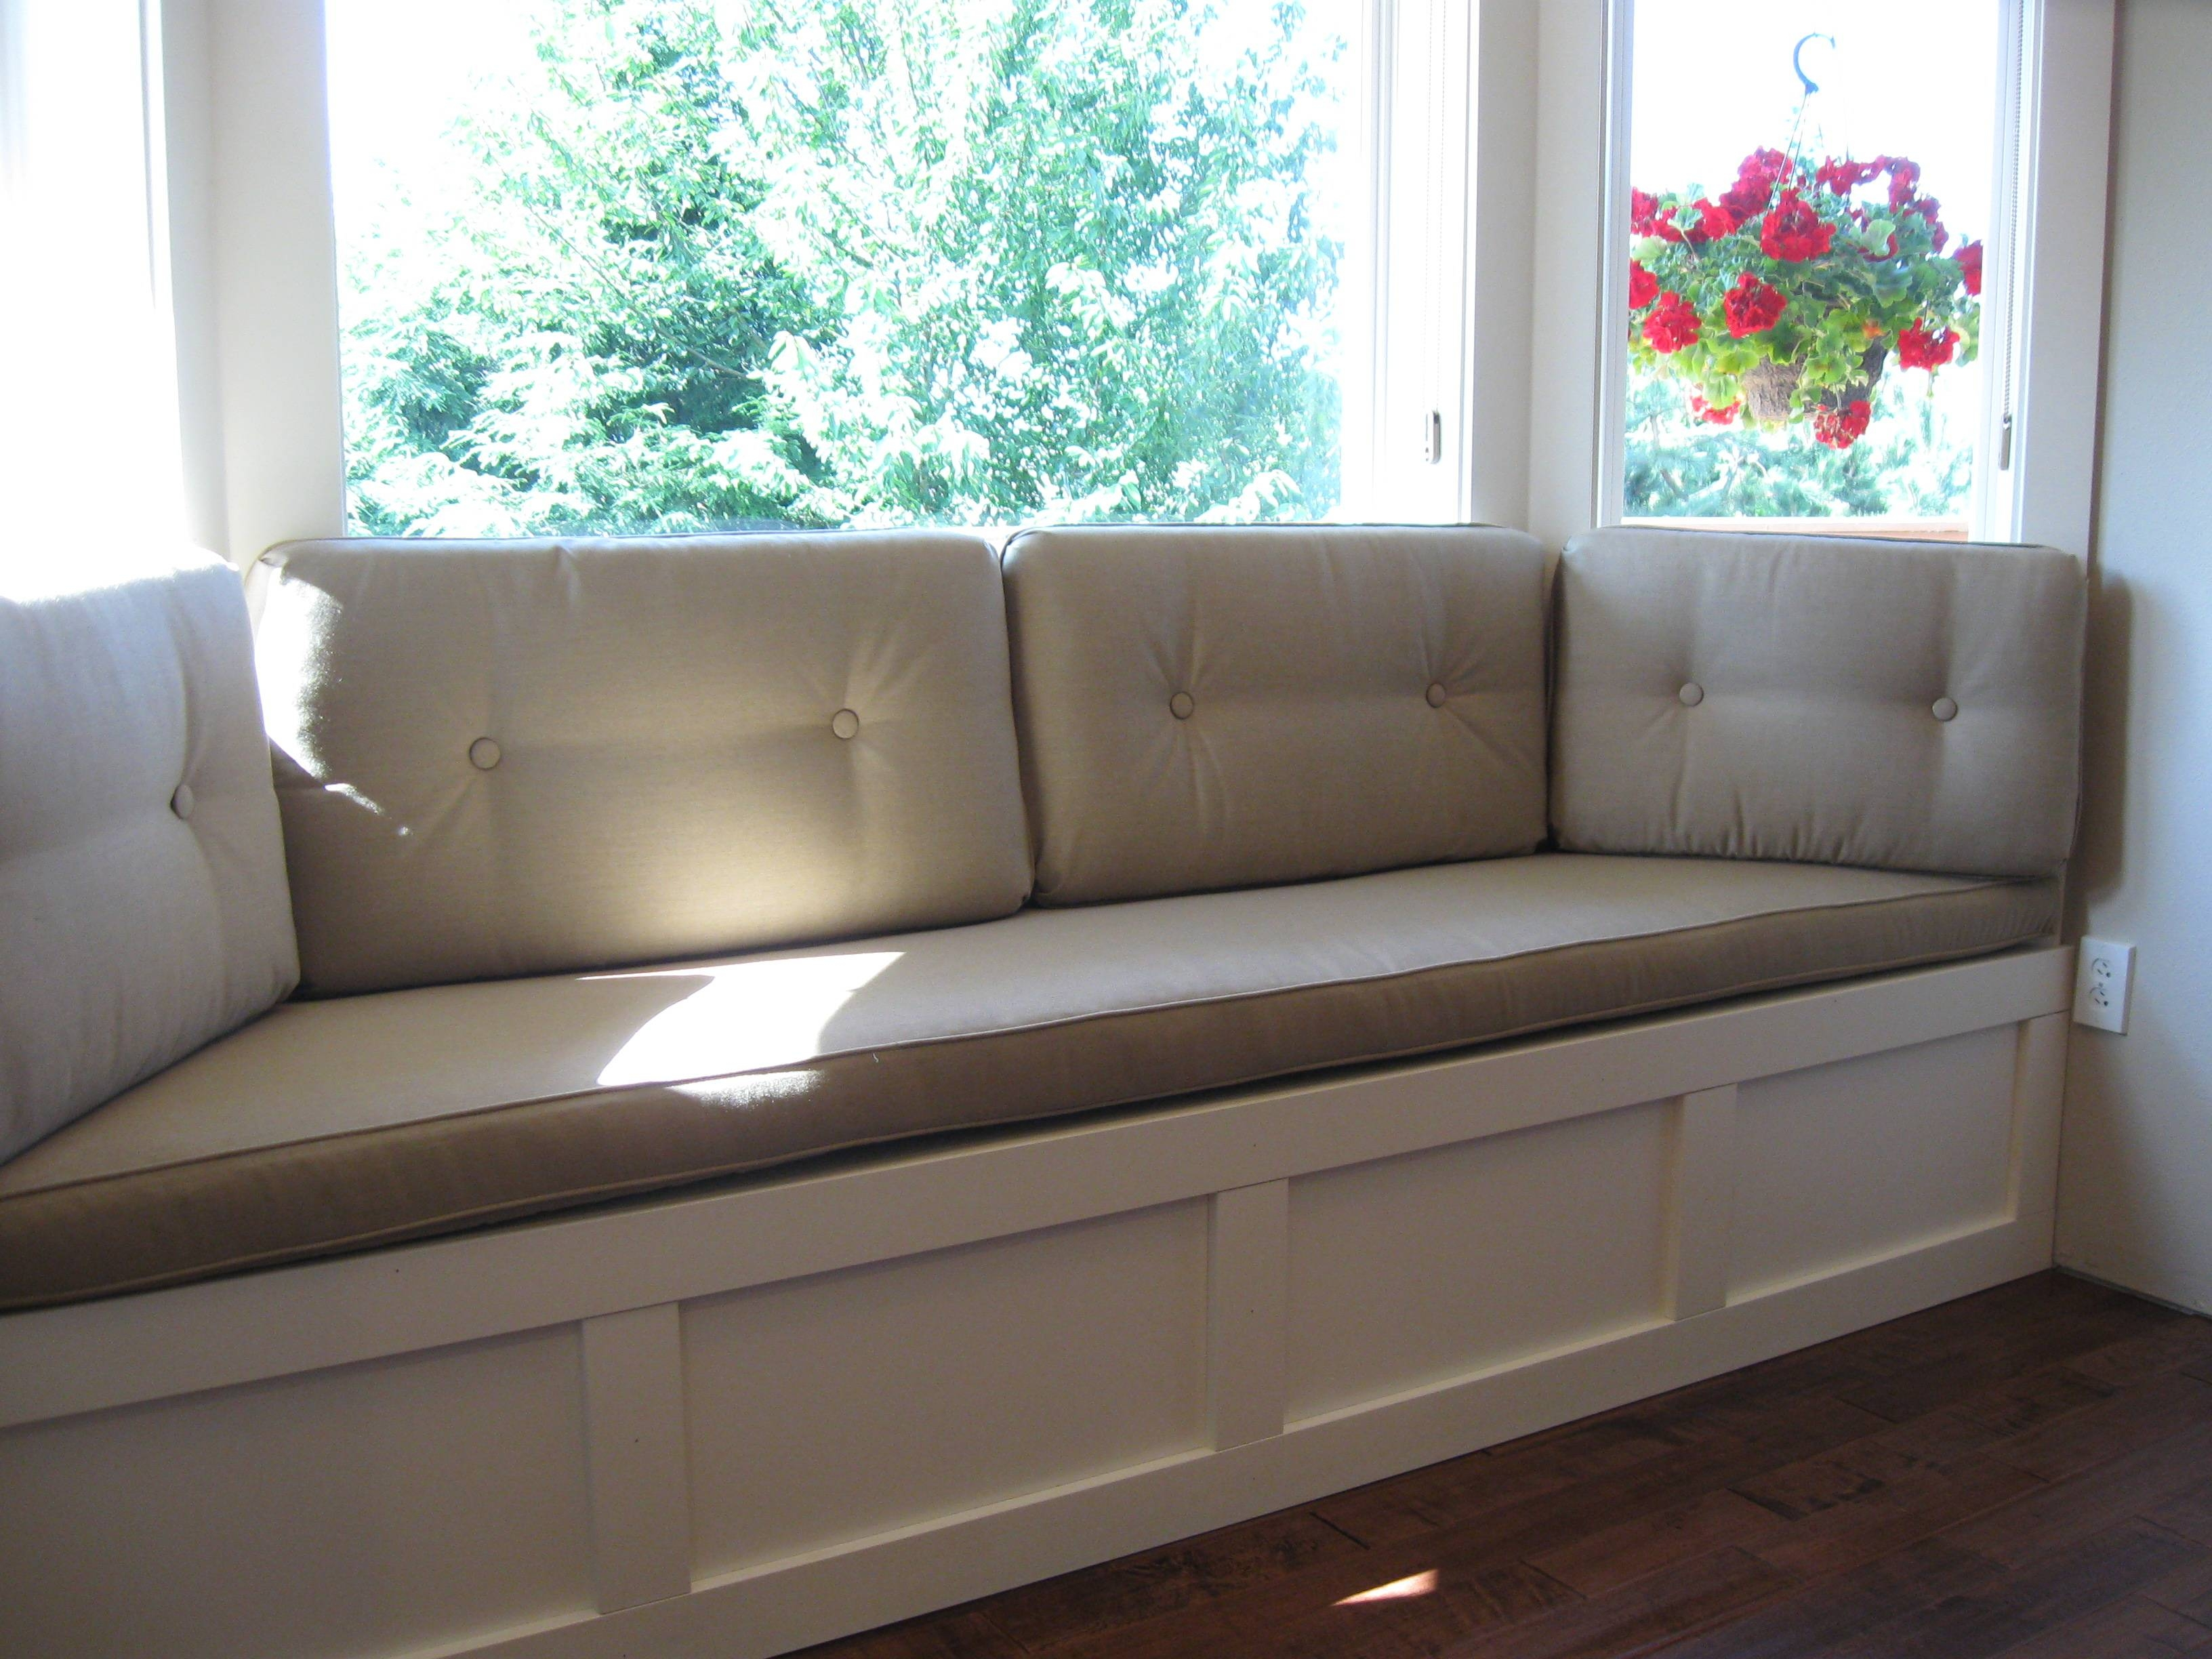 Sofas Center : Surprising Bay Window Sofa Images Concept For for The Bay Sofas (Image 17 of 25)